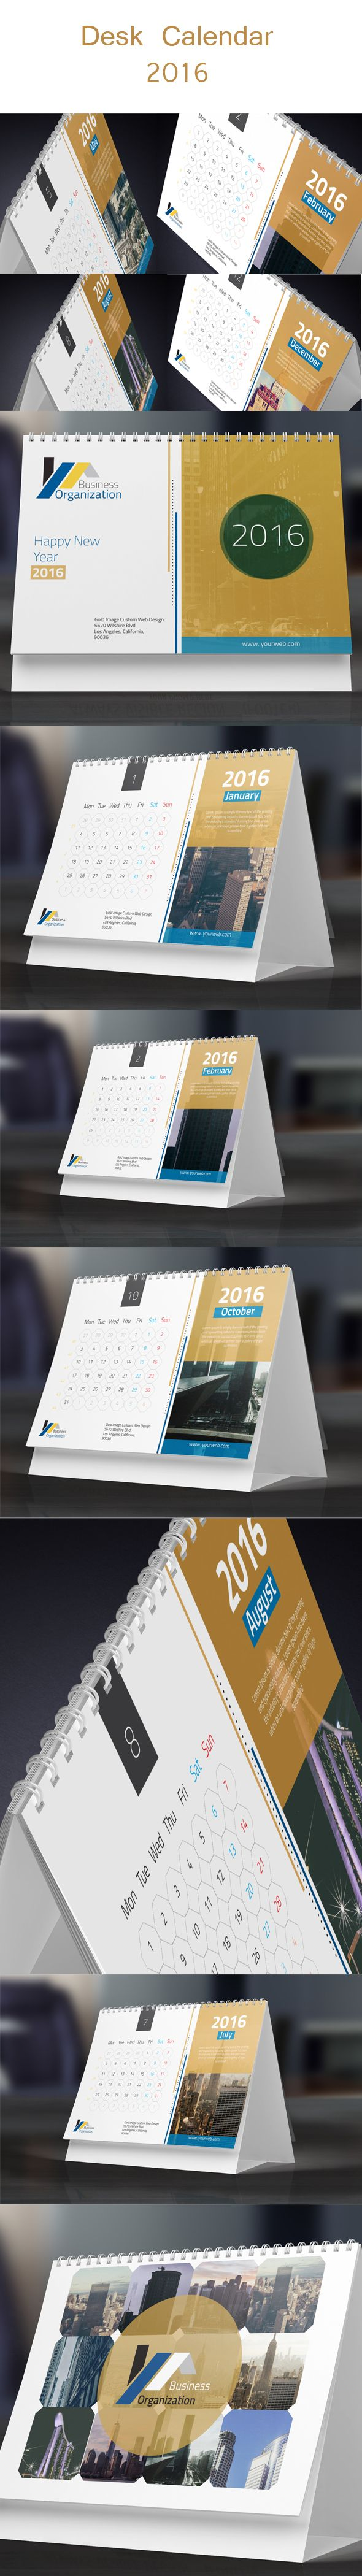 Desk Calendar 2016 on Behance